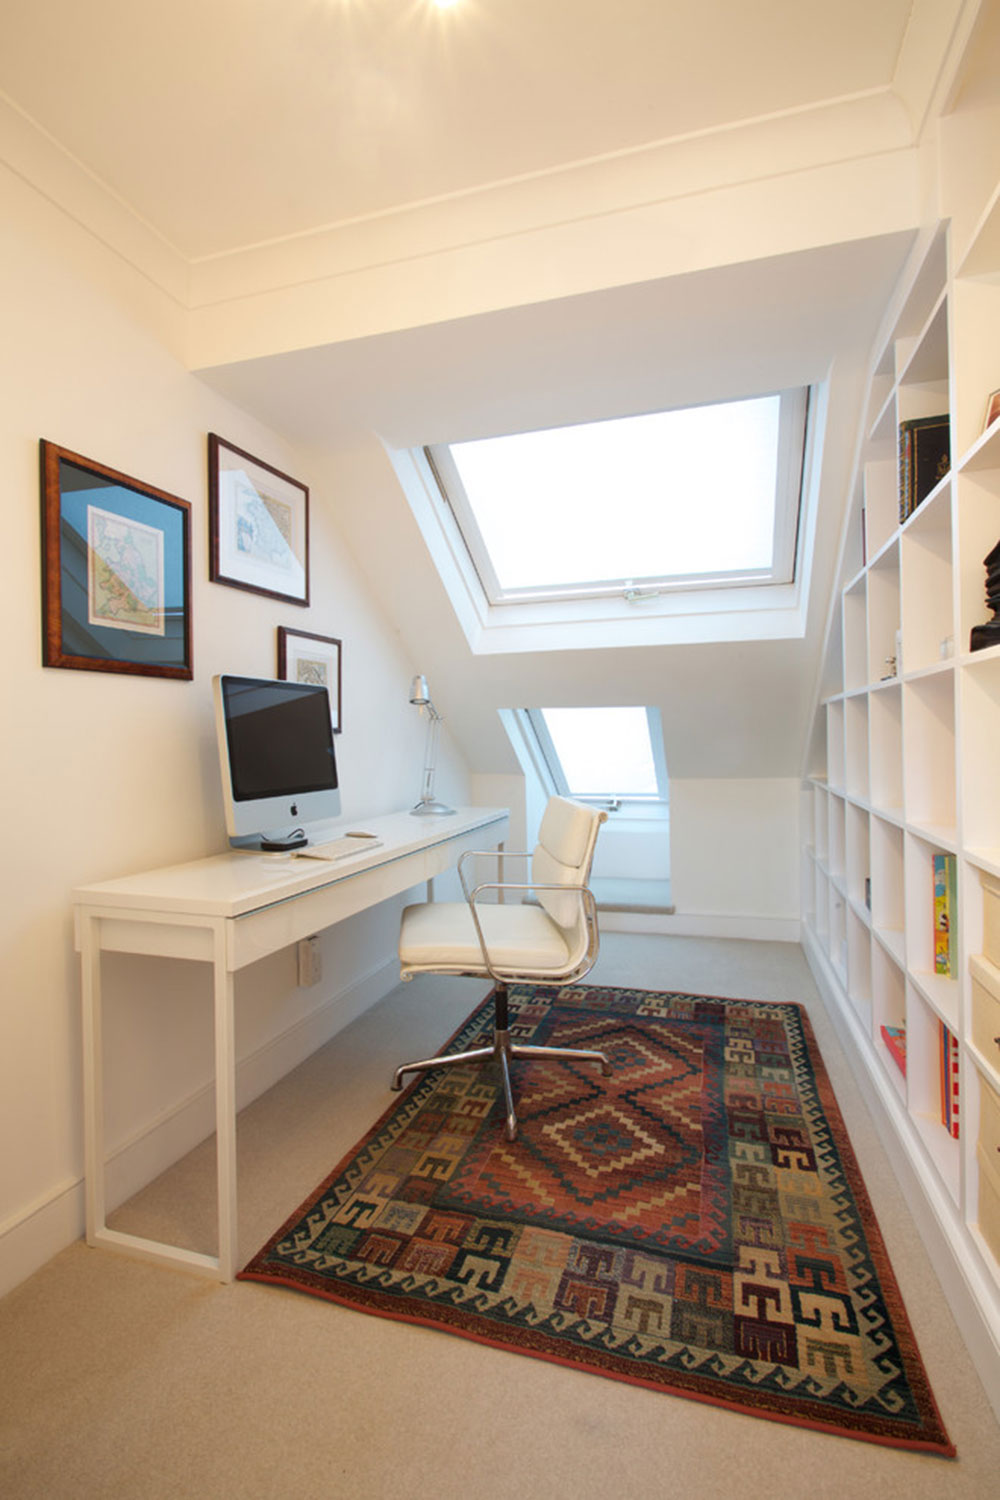 Decorating Your Study Room With Style8 Decorating Your Study Room With Part 61